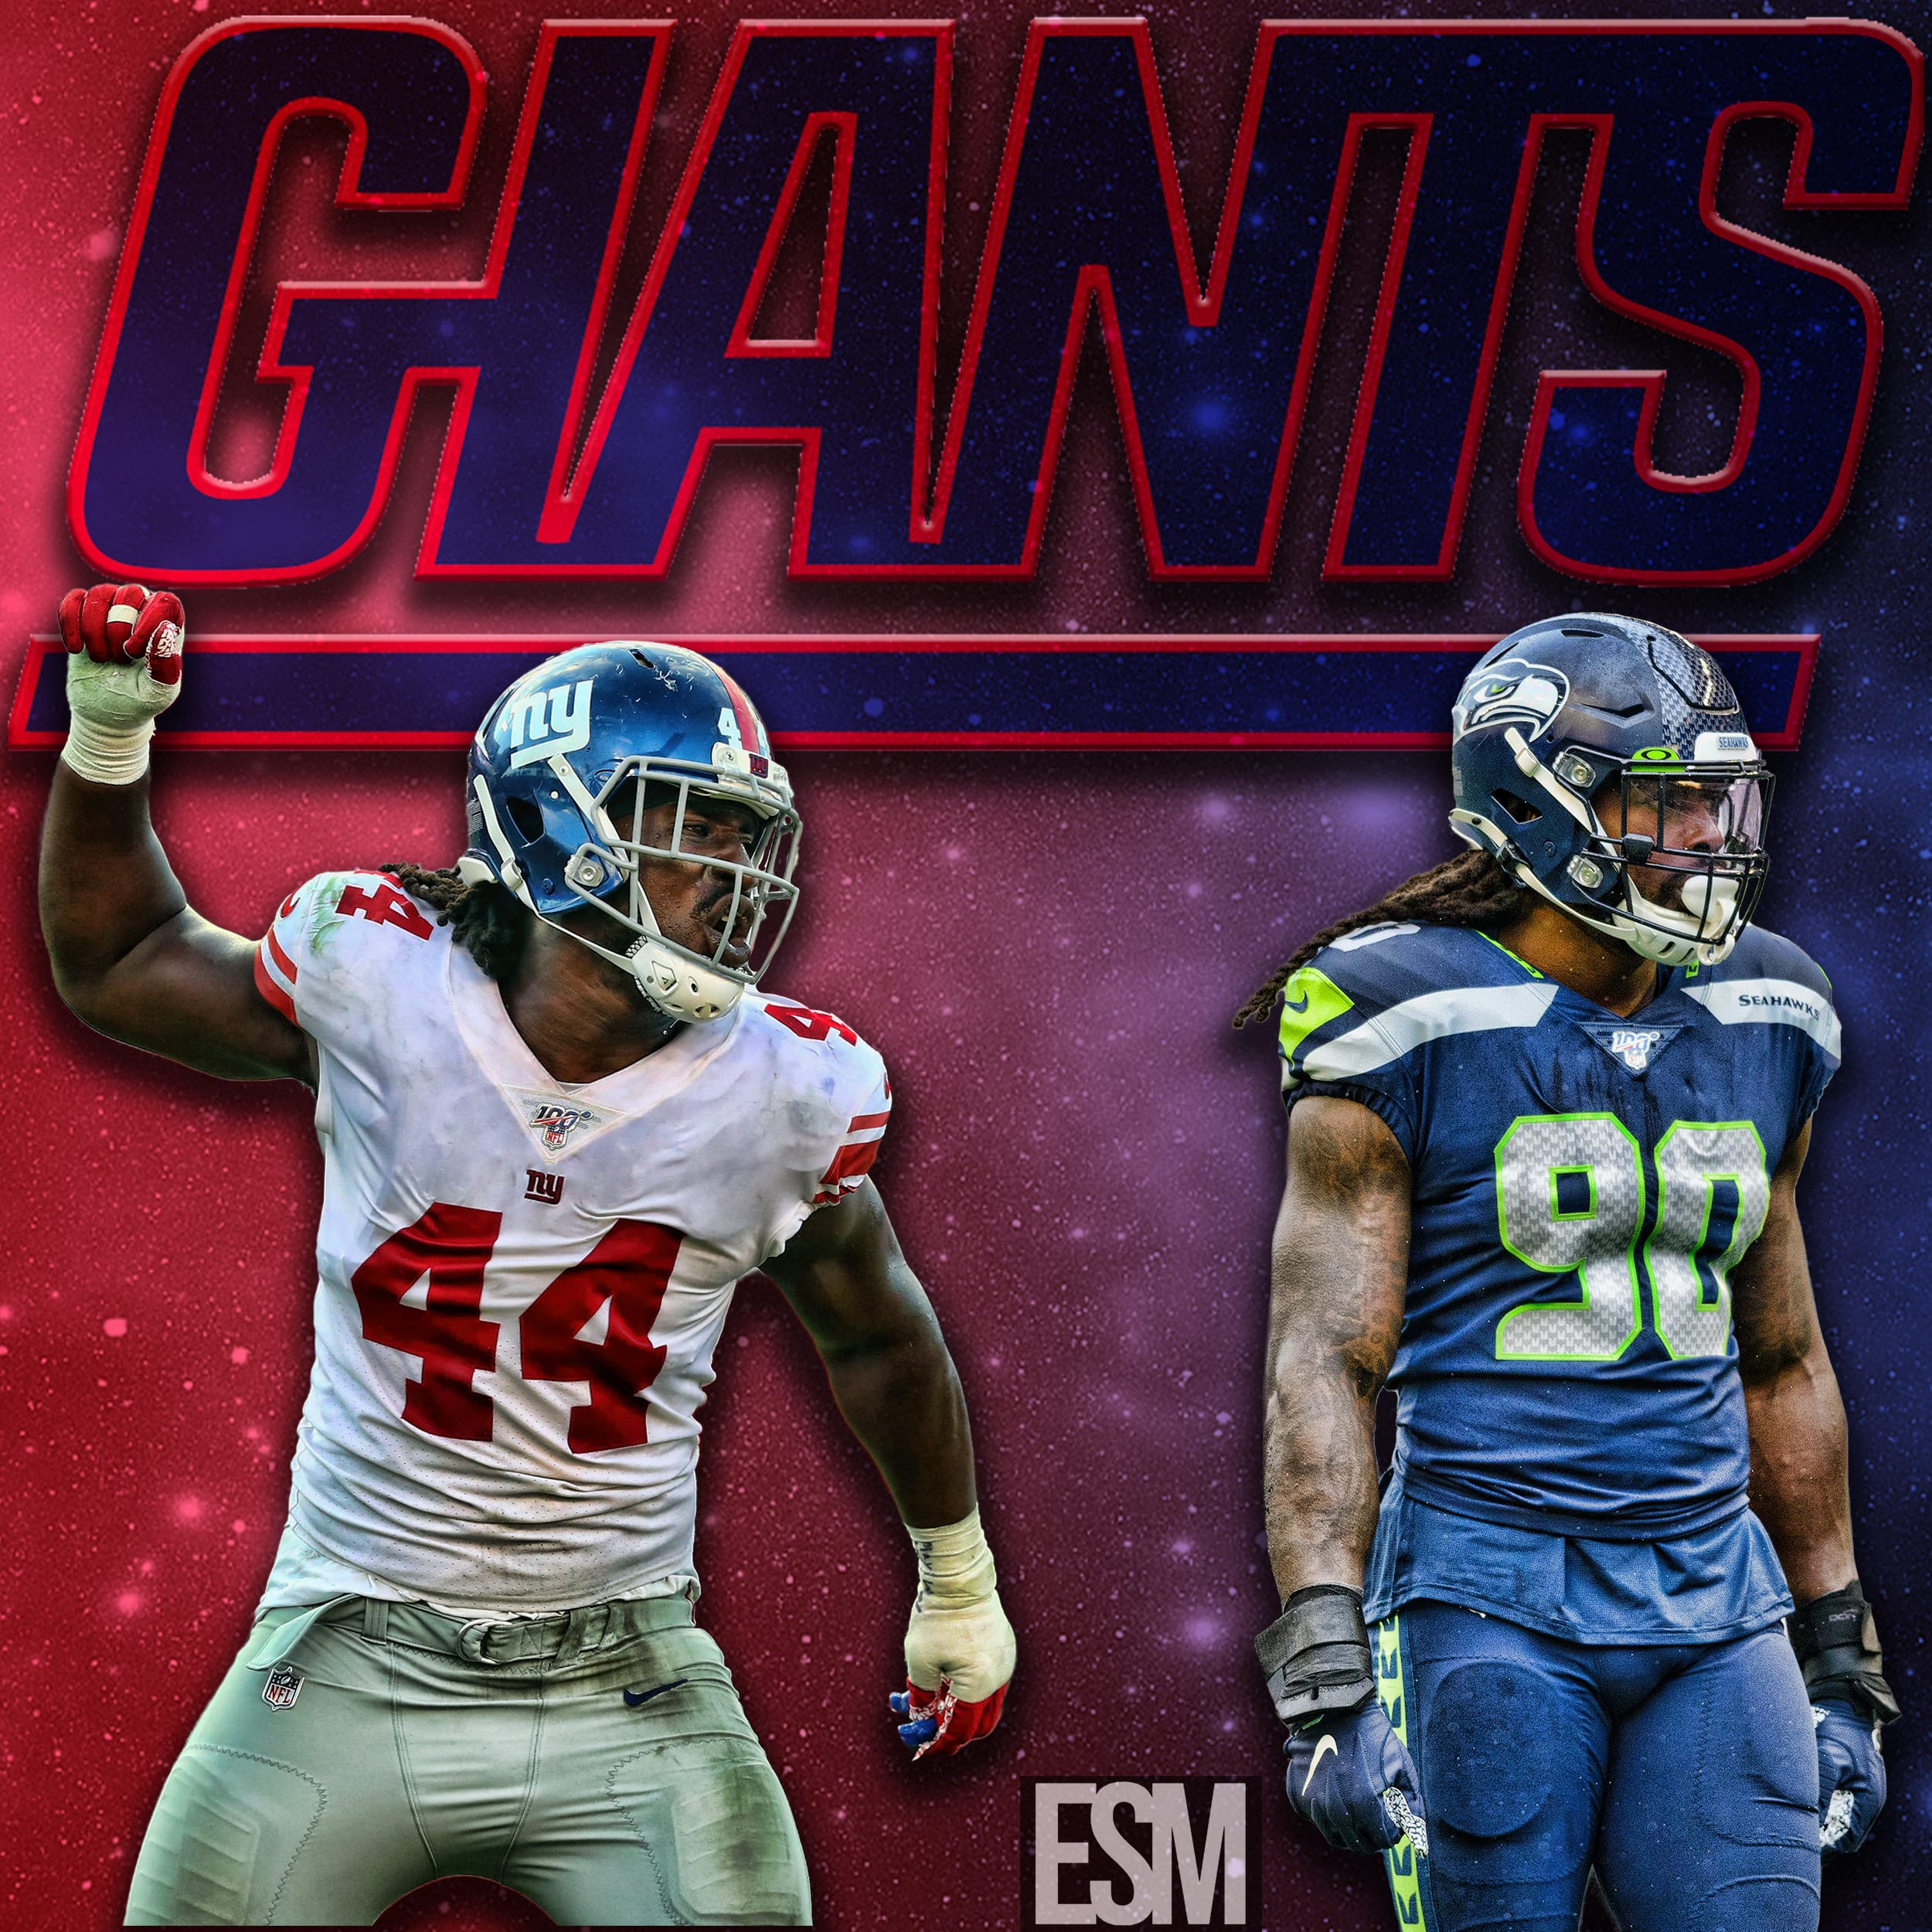 New York Giants, Jadeveon Clowney, Markus Golden